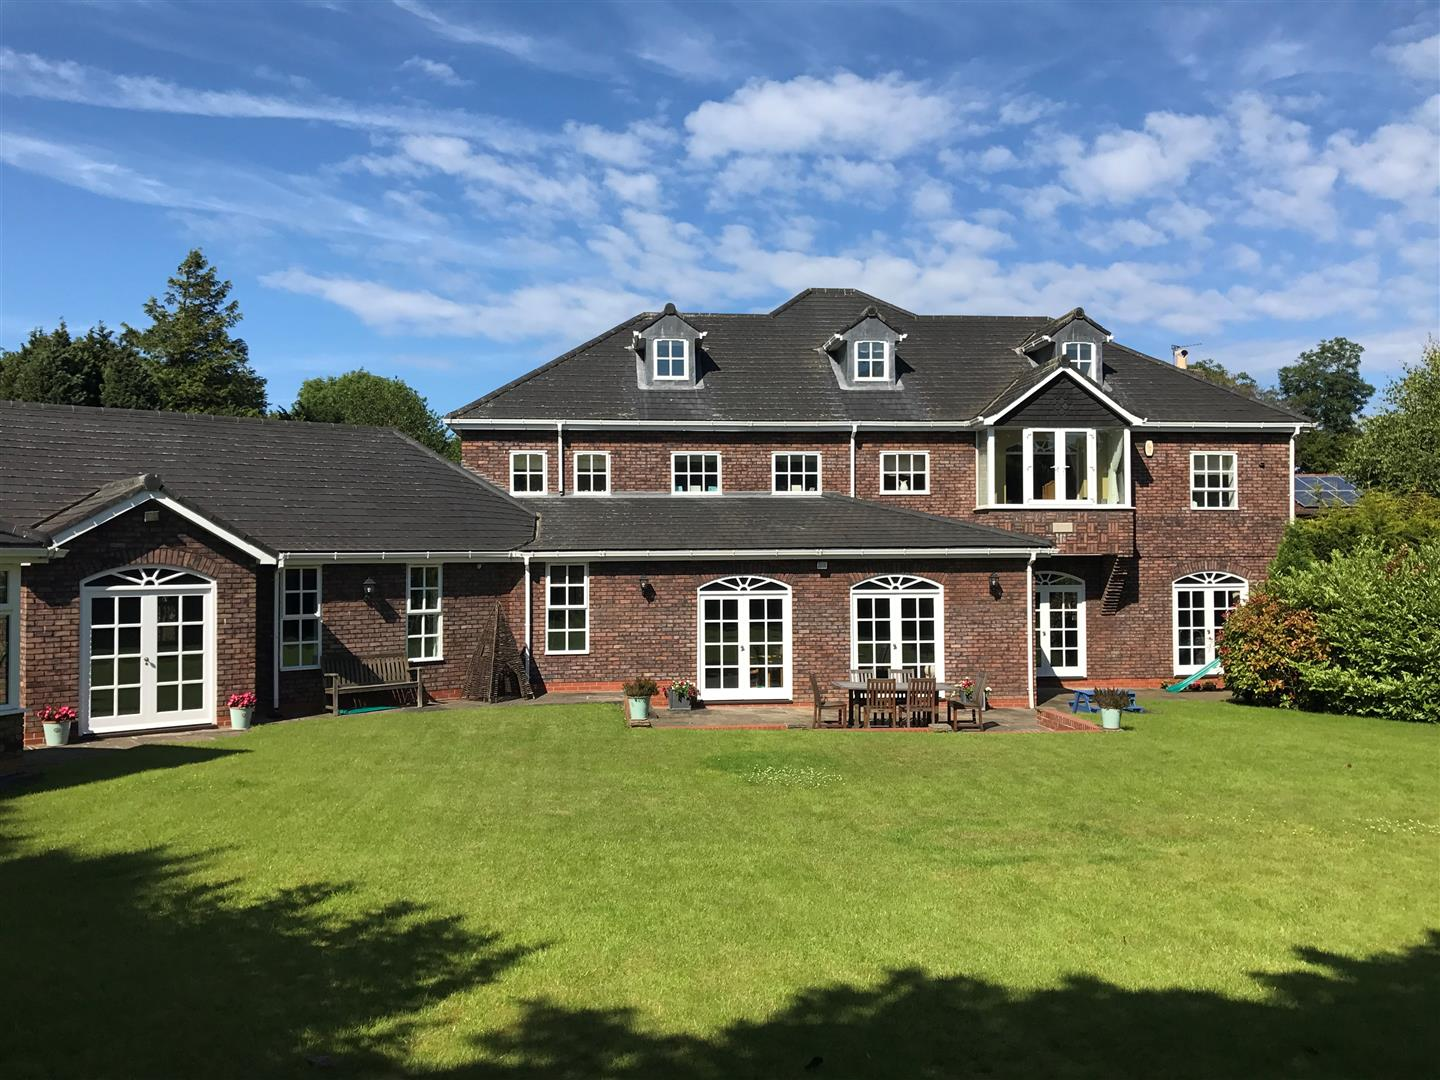 6 Bedroom House For Sale In Hartlepool